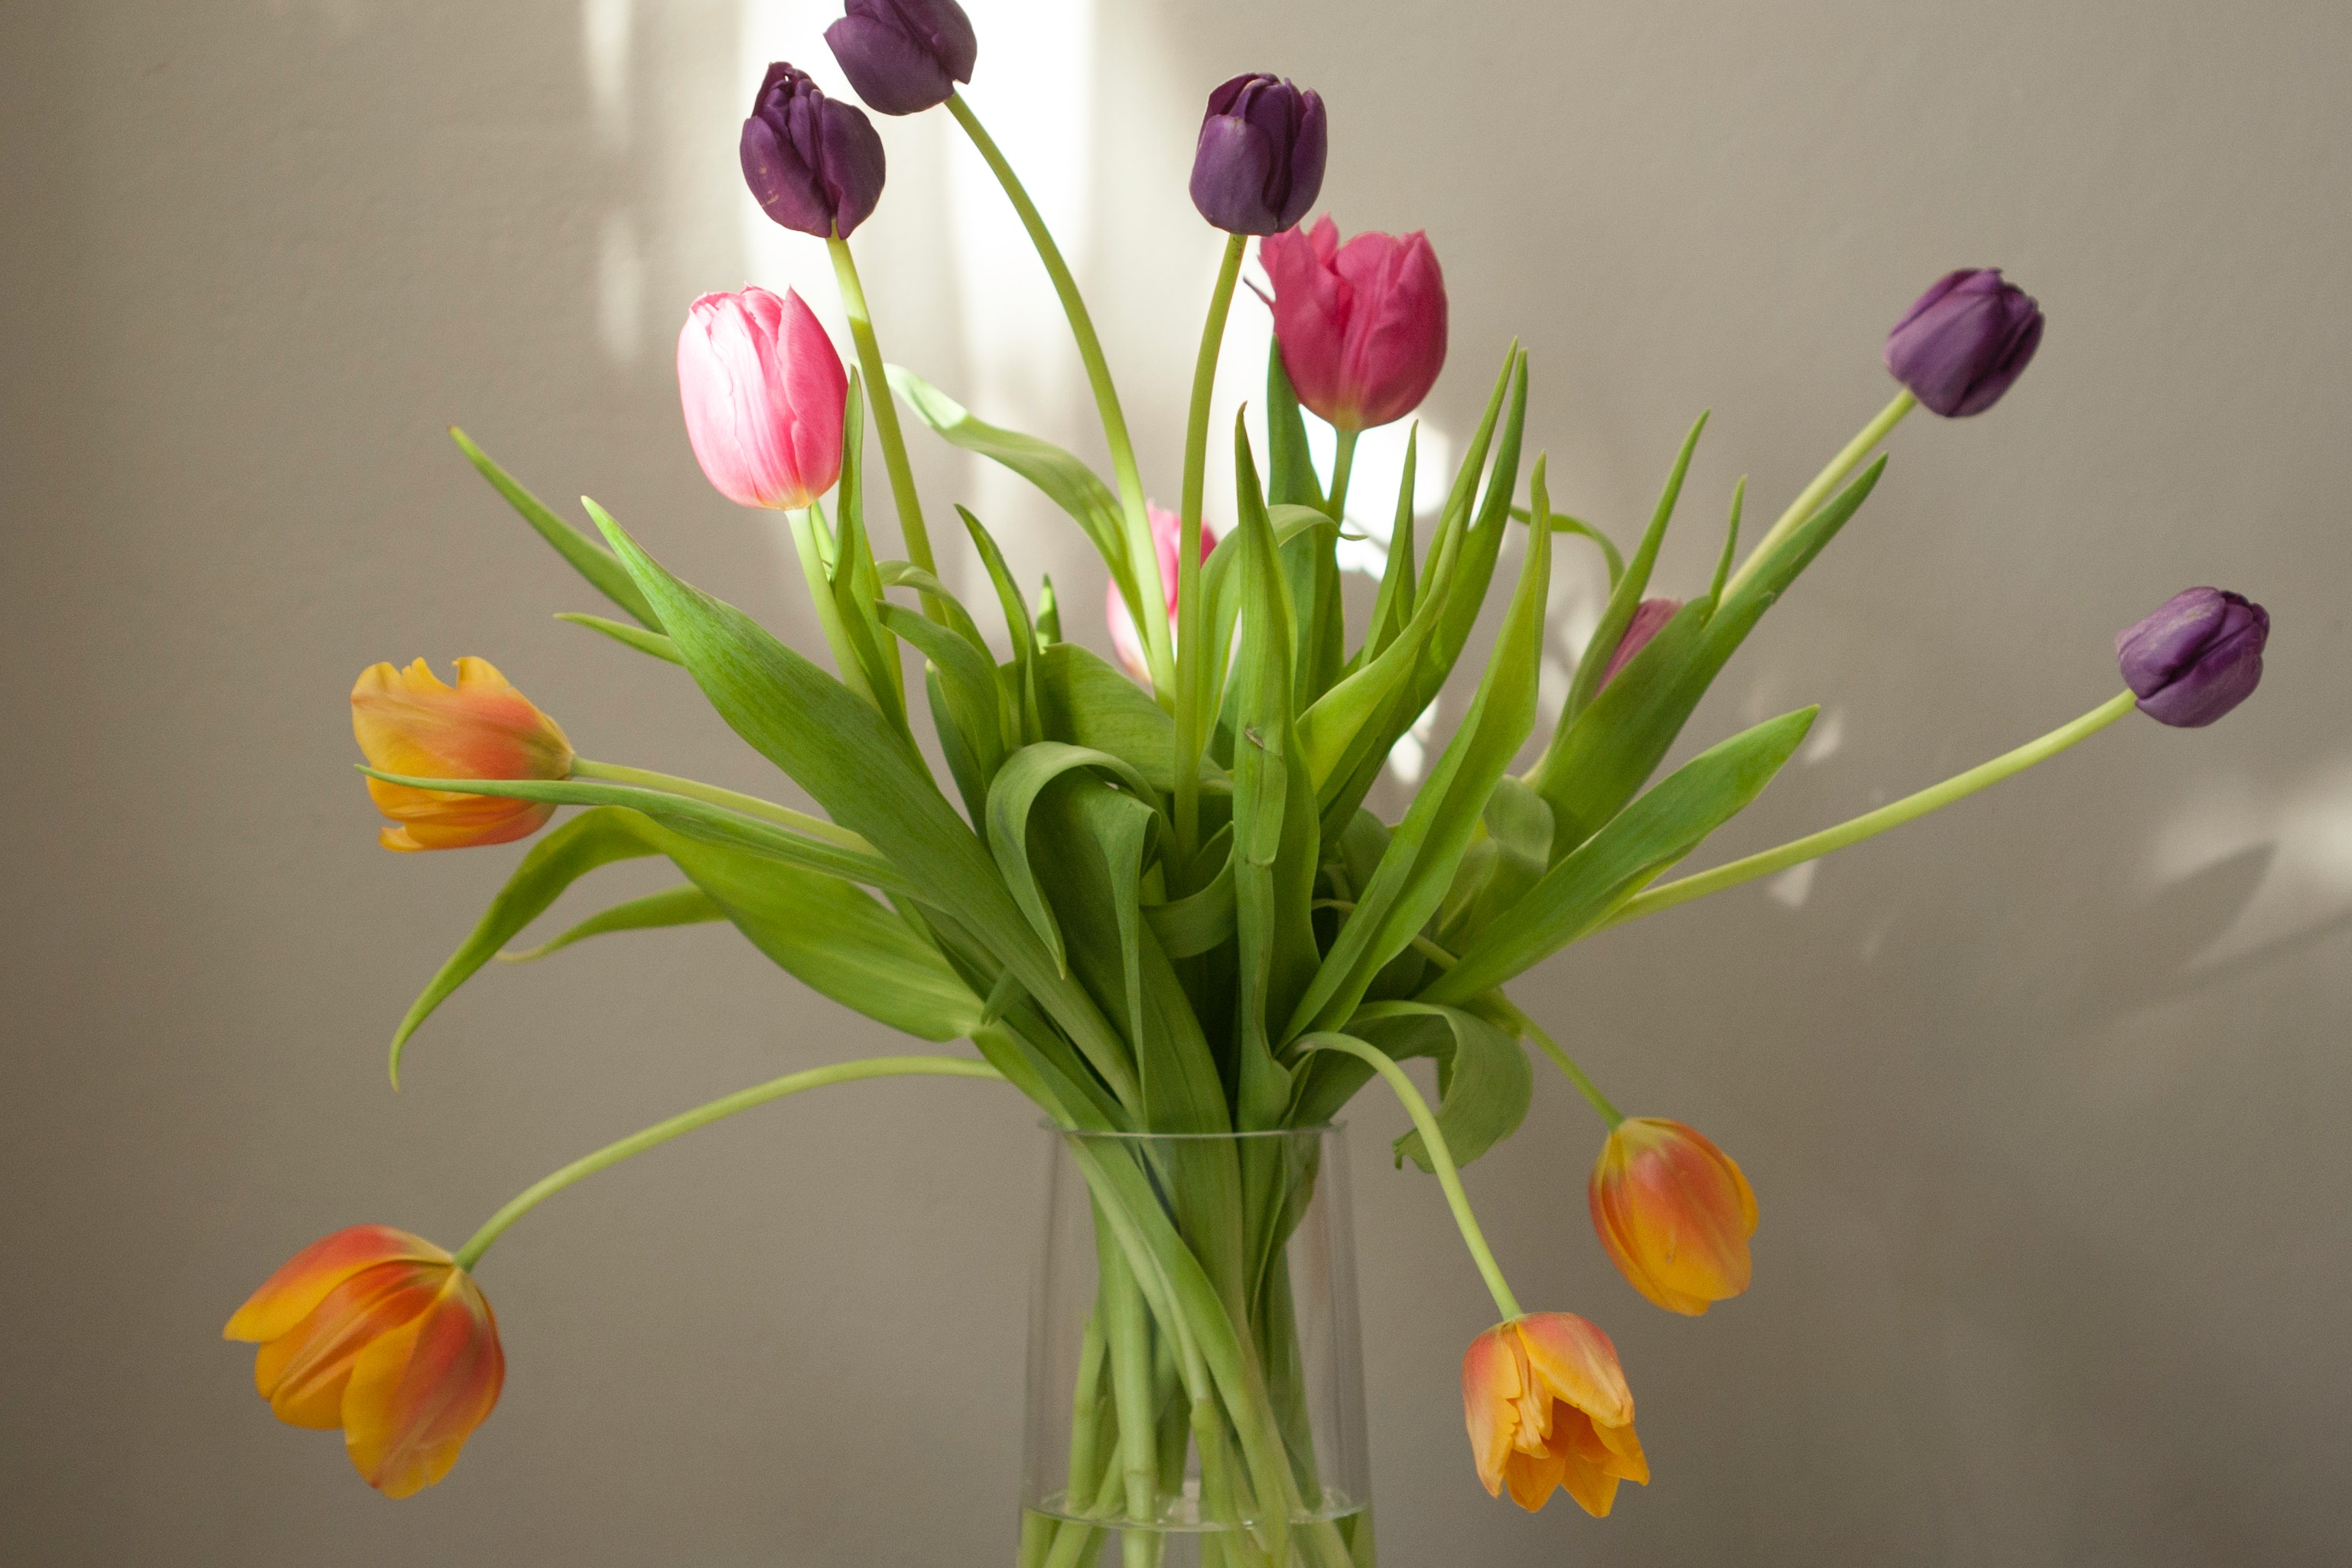 tulips-spring-flowers-decor